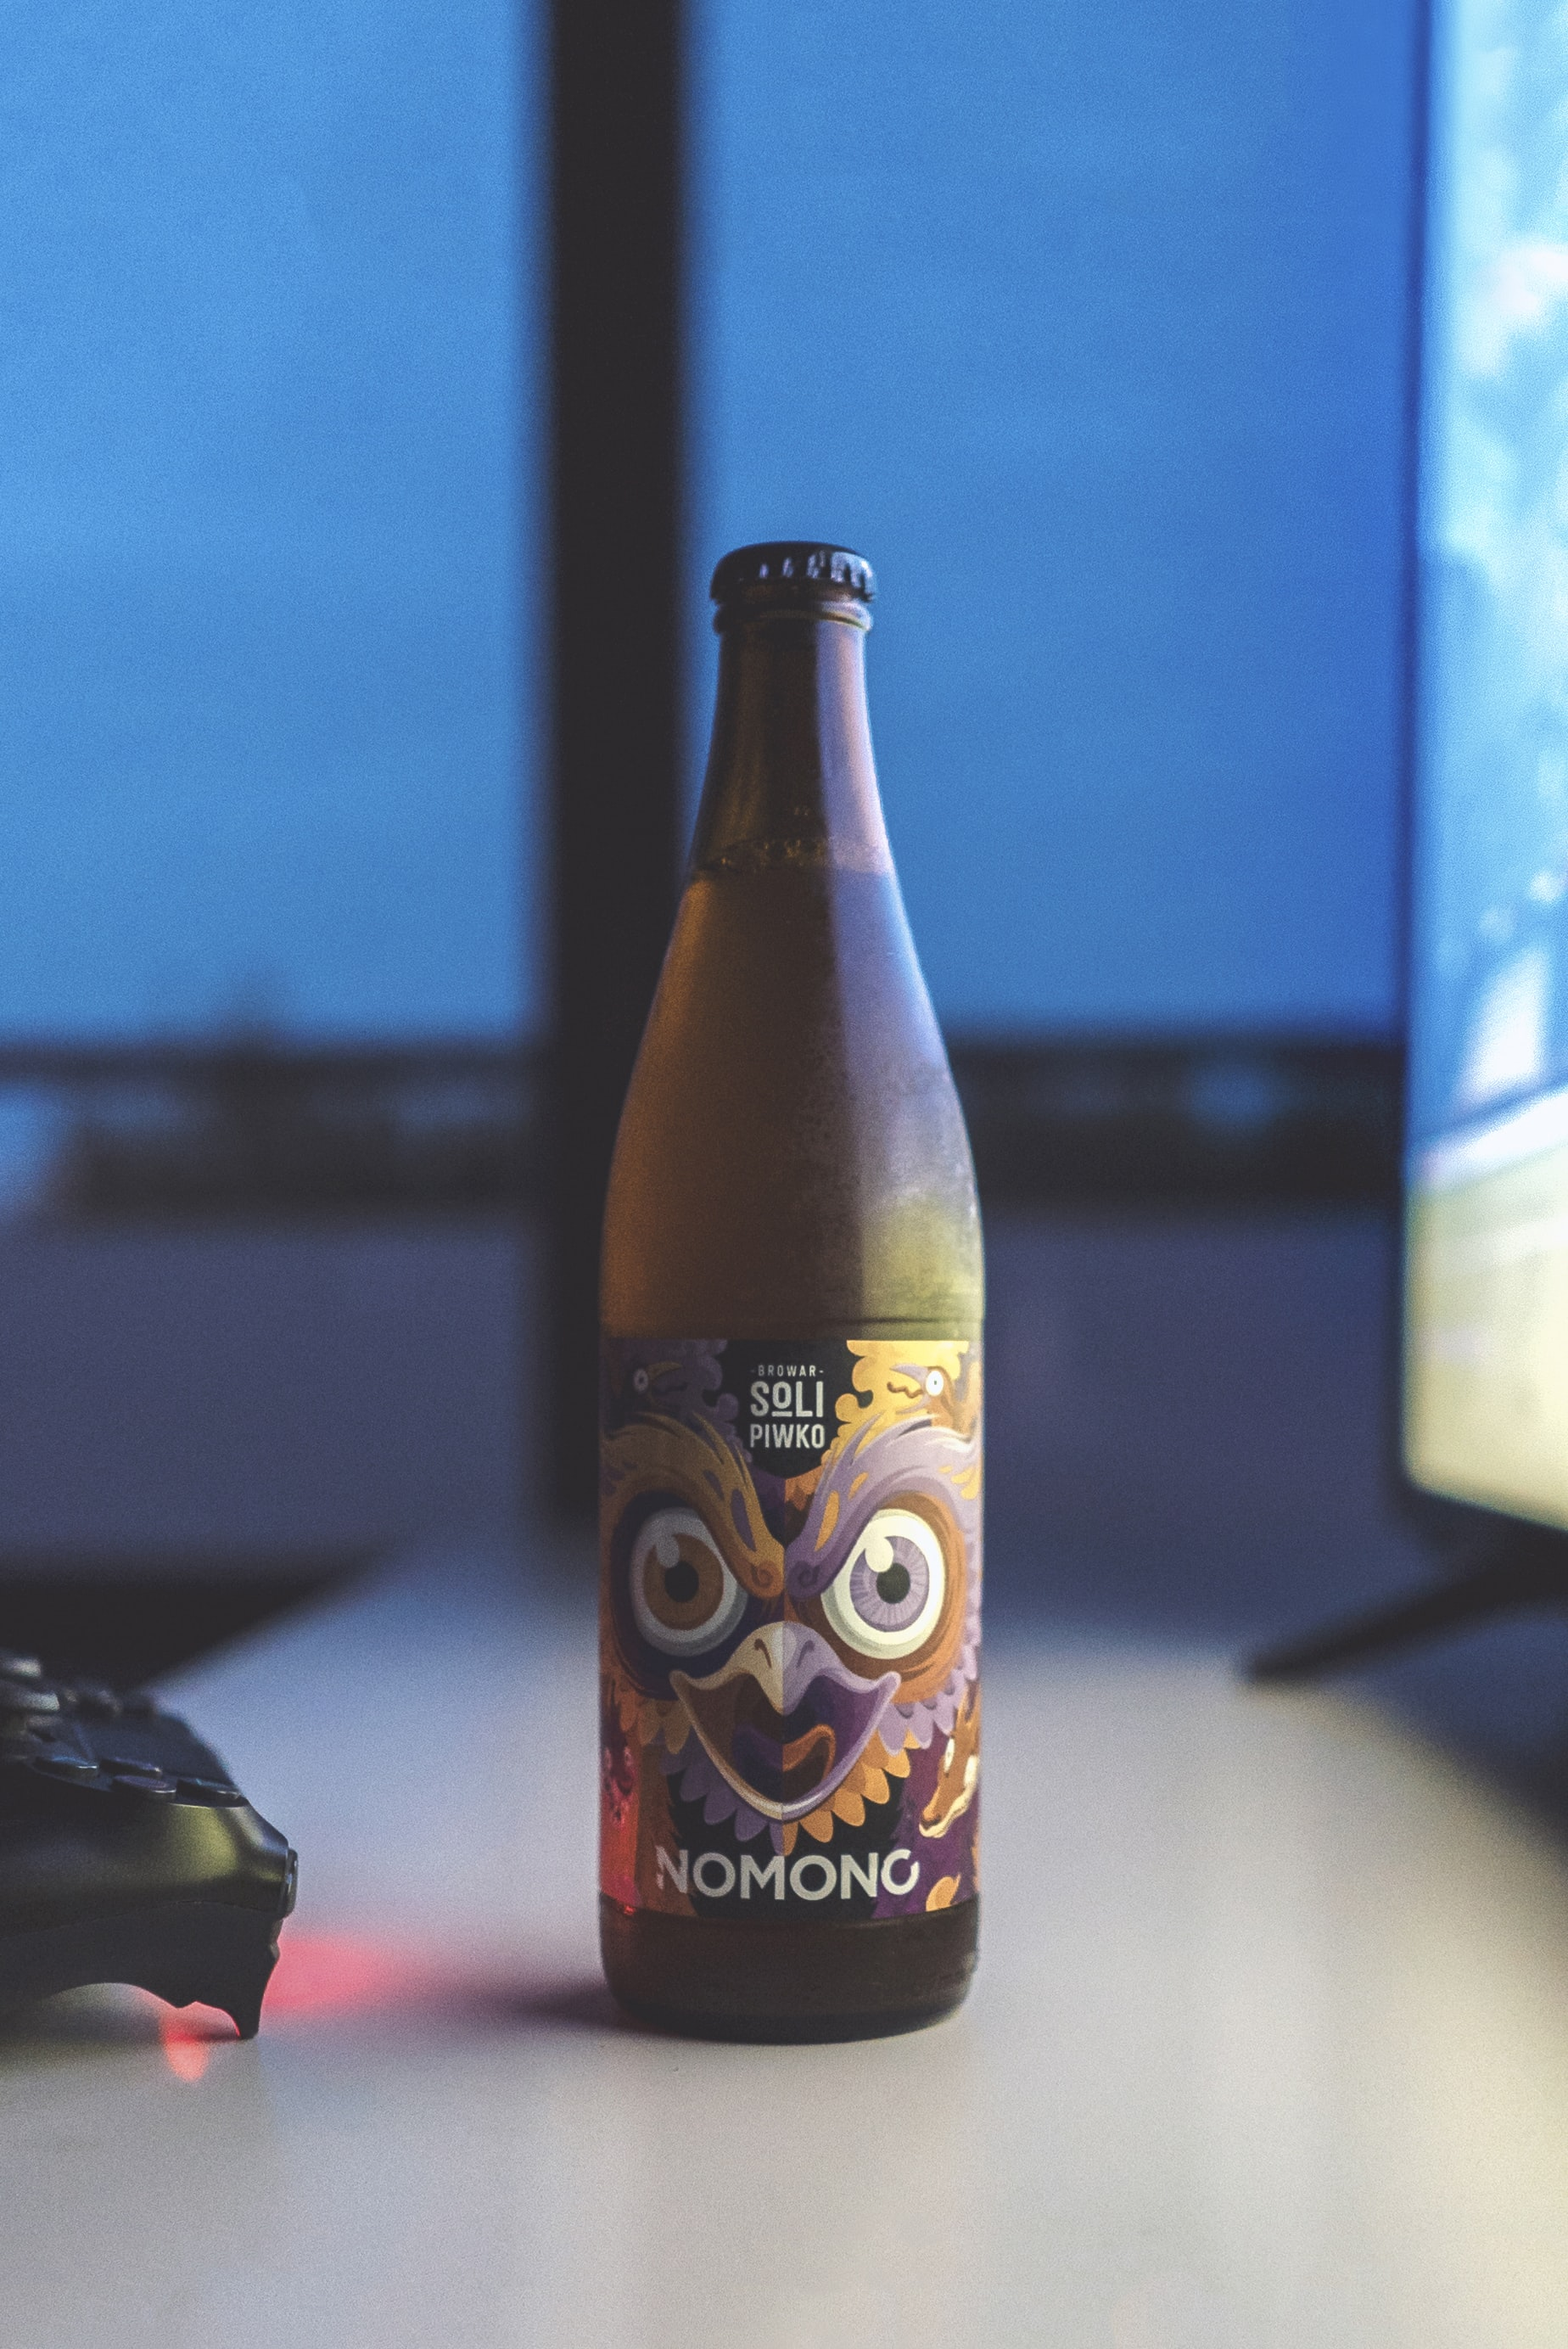 tilt-shift lens photography of Nomono beer bottle in-front of a flat screen TV